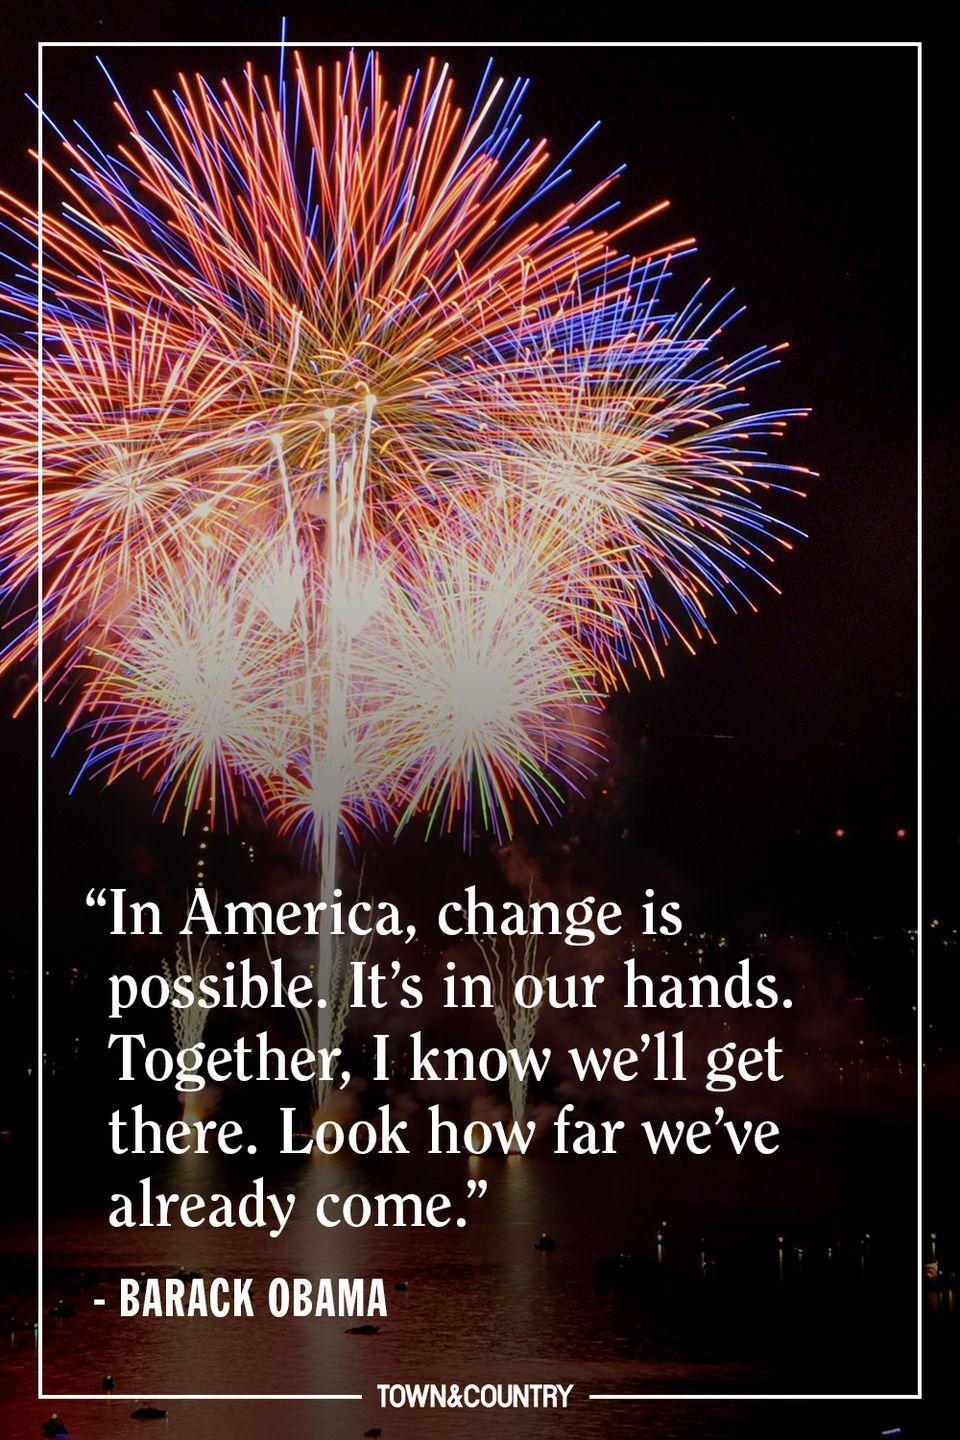 """<p>""""In America, change is possible. It's in our hands. Together, I know we'll get there. Look how far we've already come.""""</p><p>— <em>Barack Obama</em></p>"""